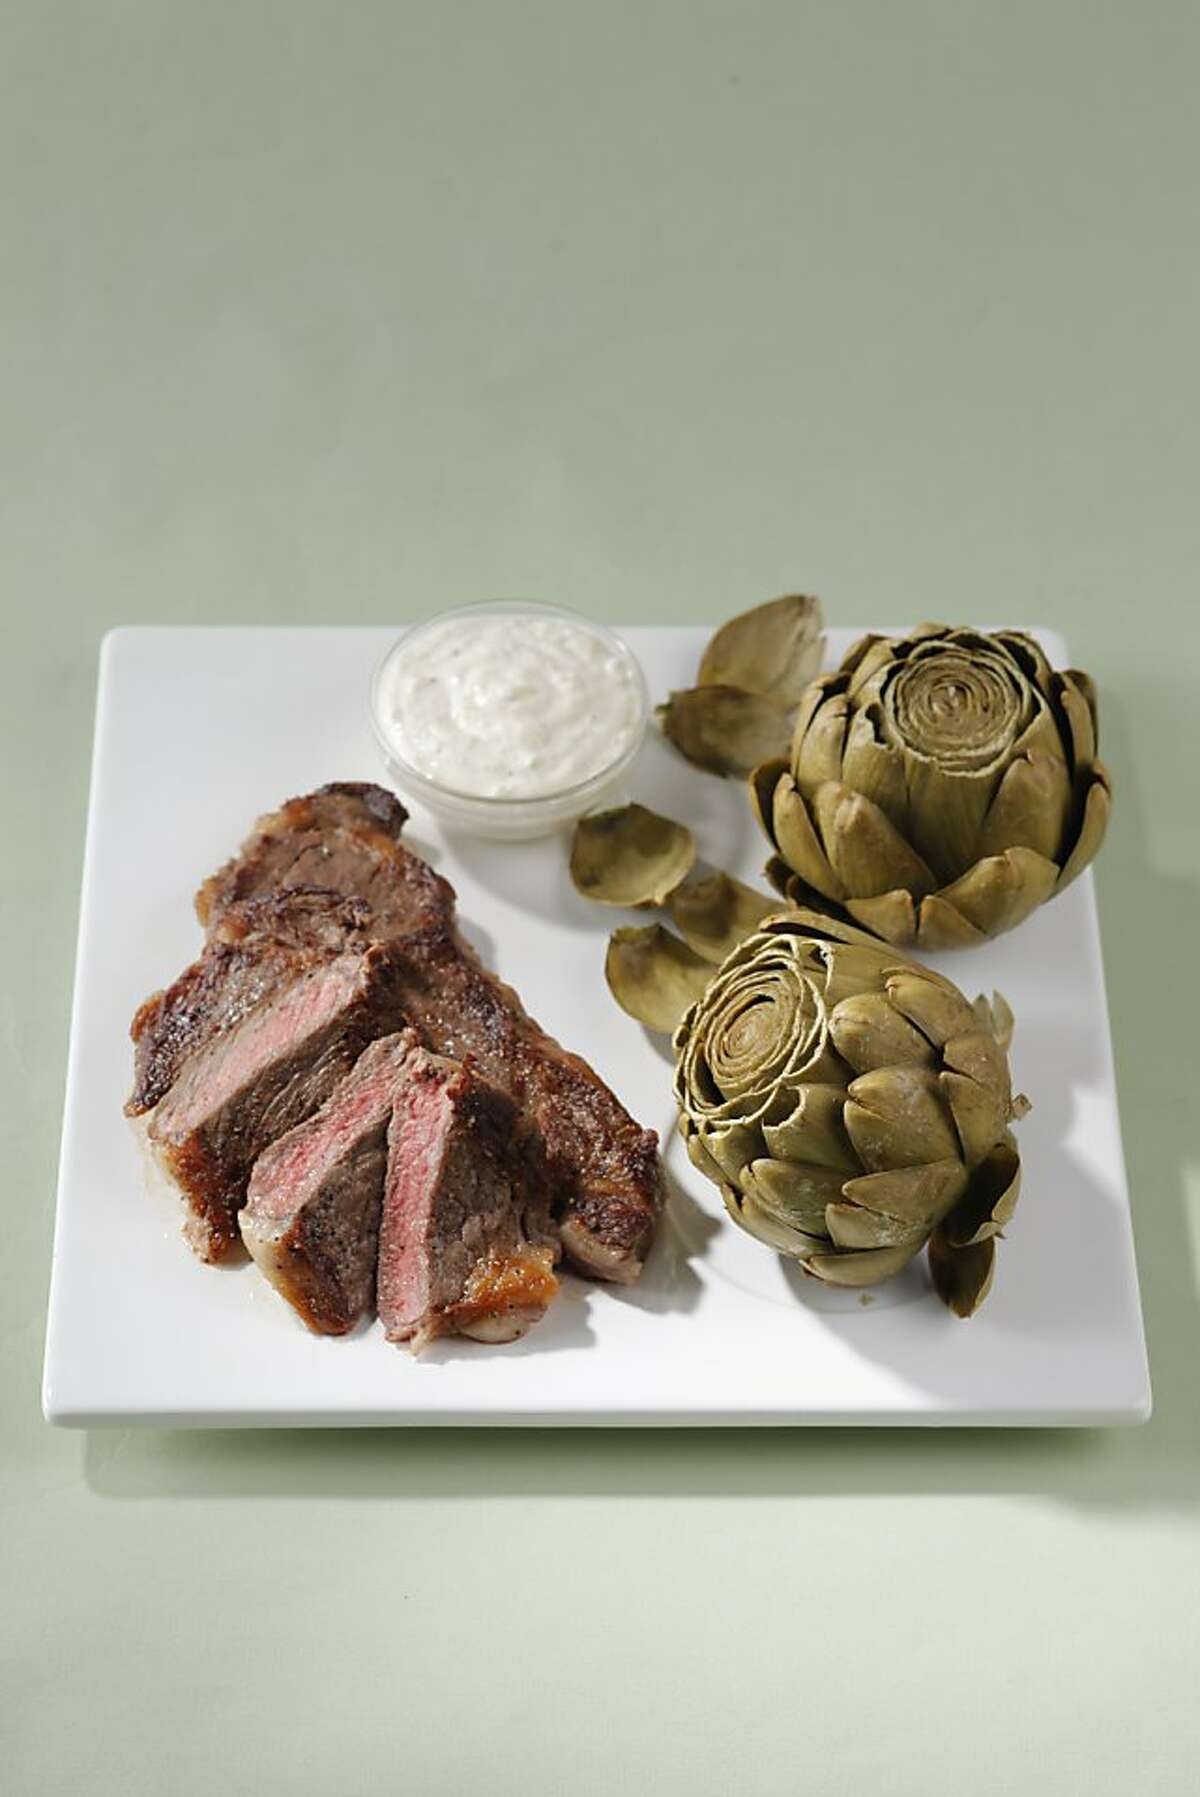 Steak and Artichoke with Spring Onion Aioli as seen in San Francisco on April 4, 2011. Food styled by Amanda Gold.